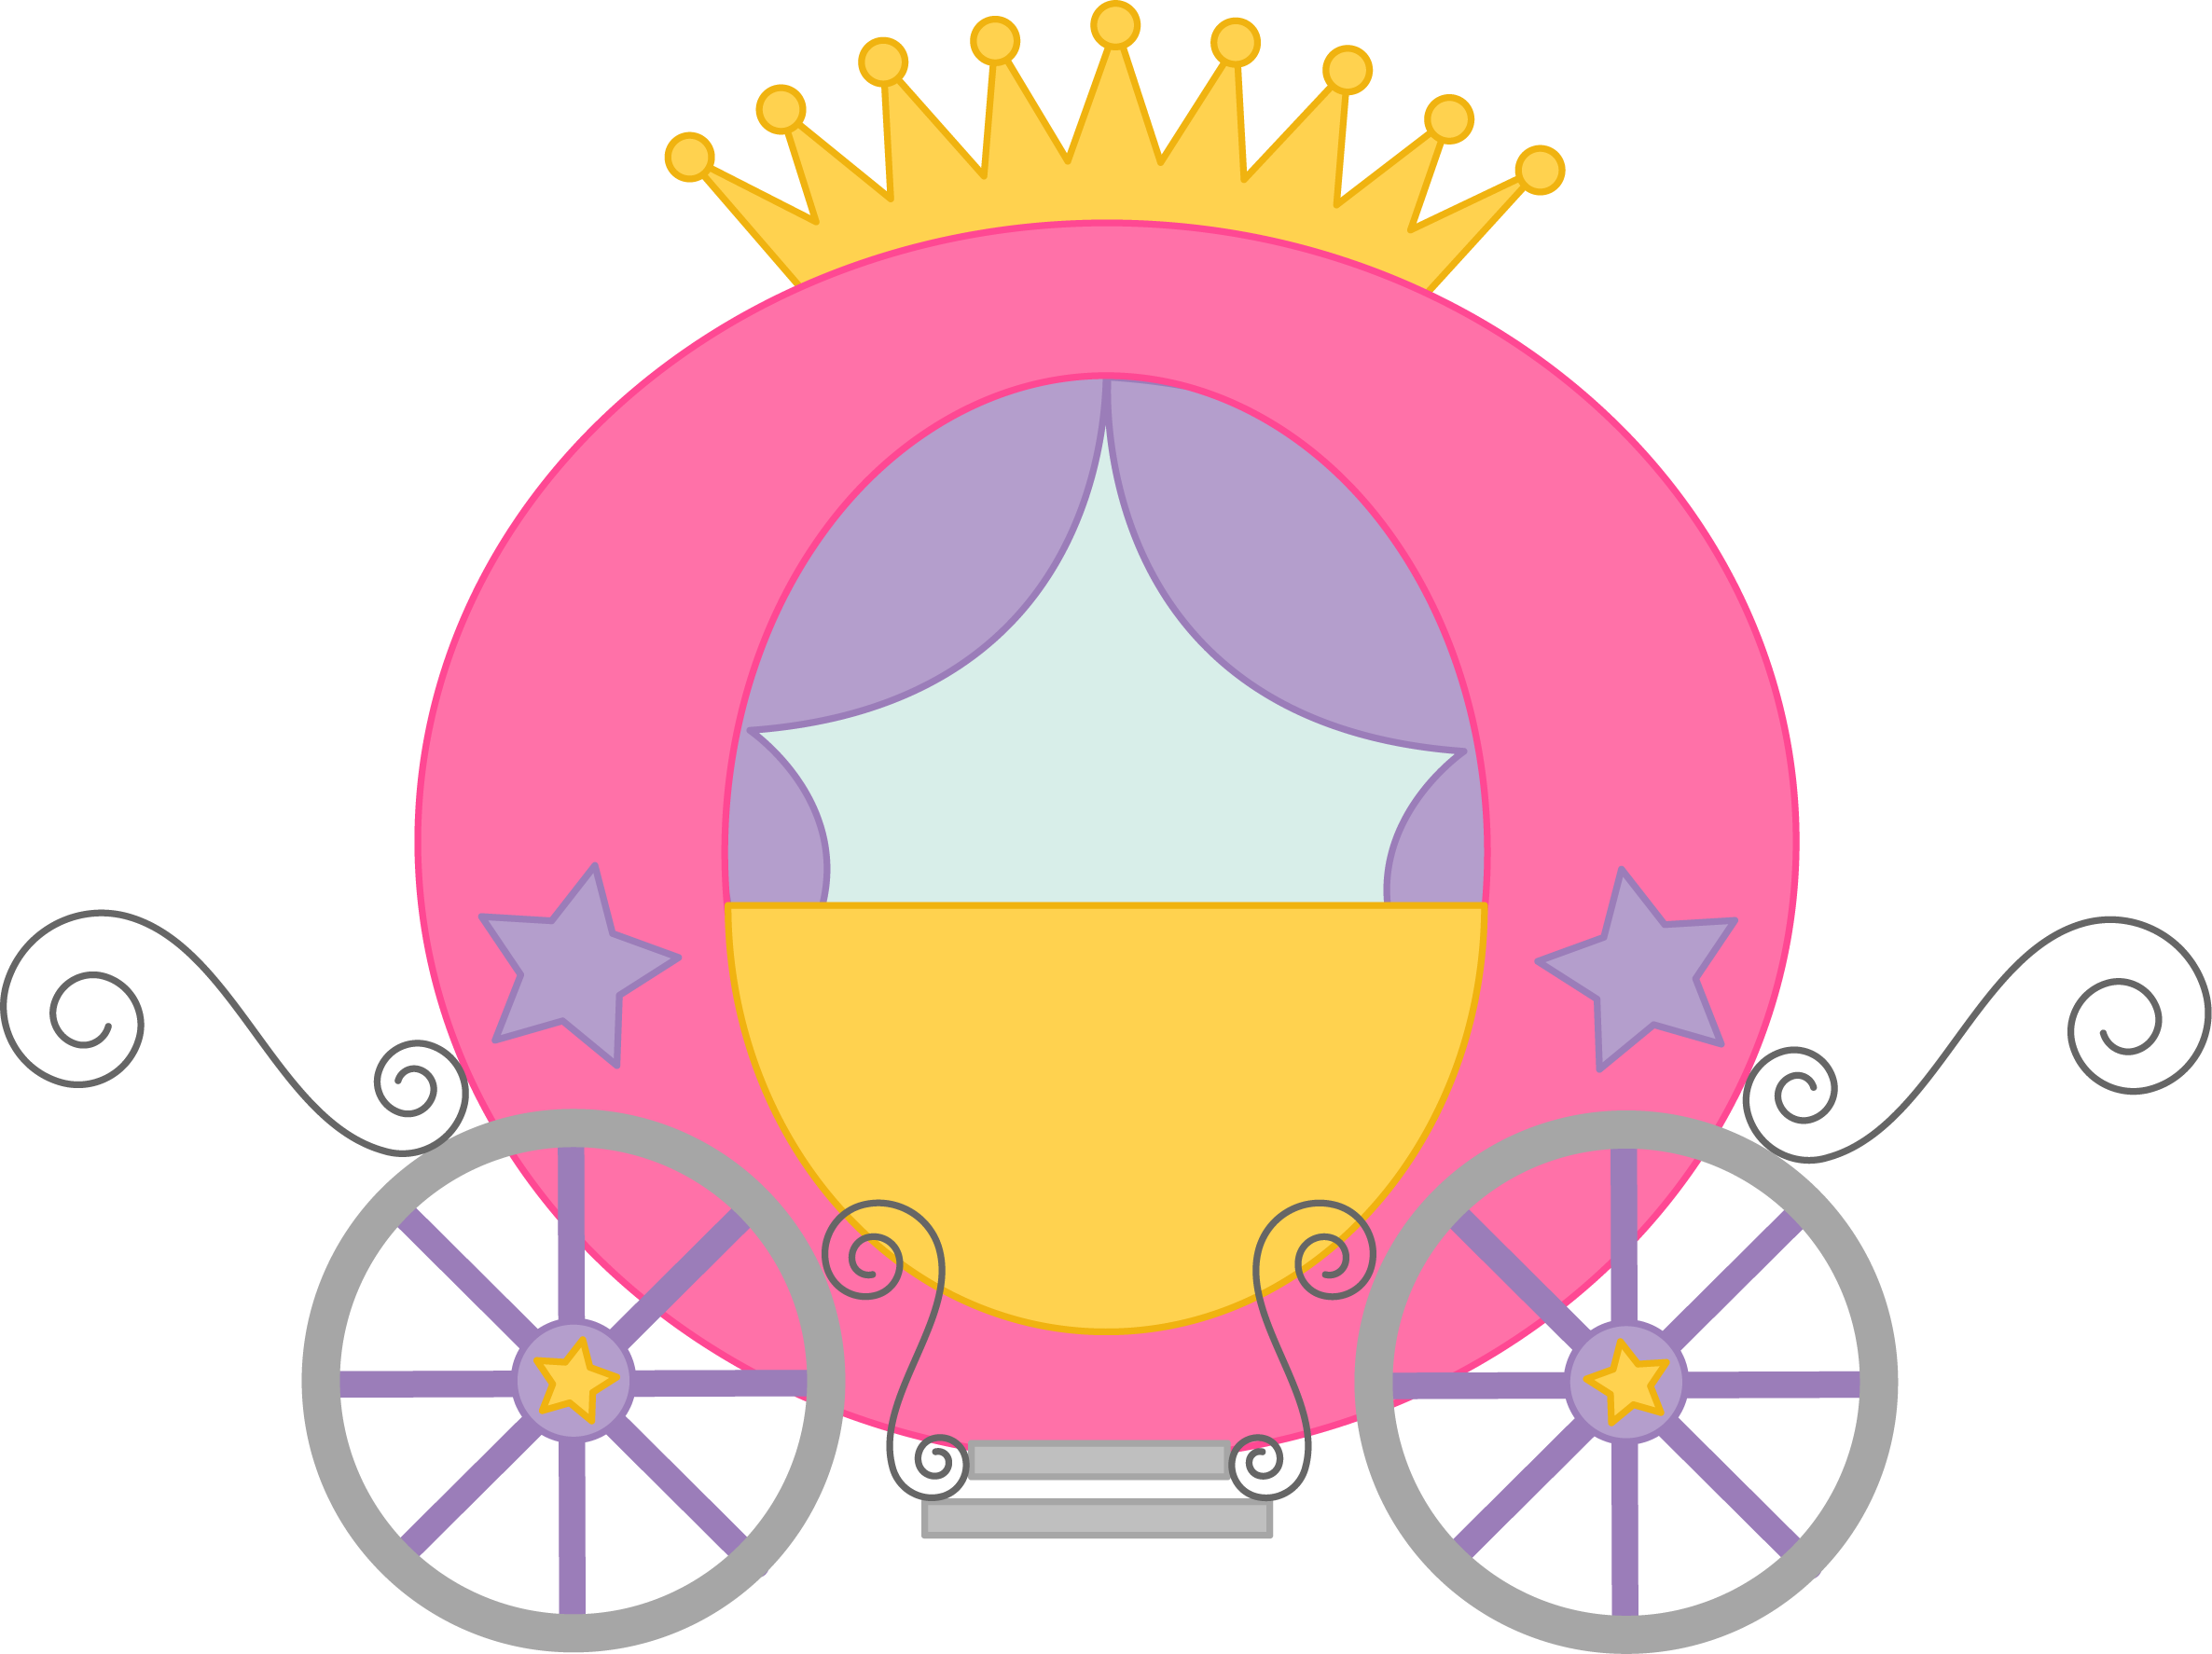 Cinderella carriage silhouette png. Fairytale princess pictures cliparts